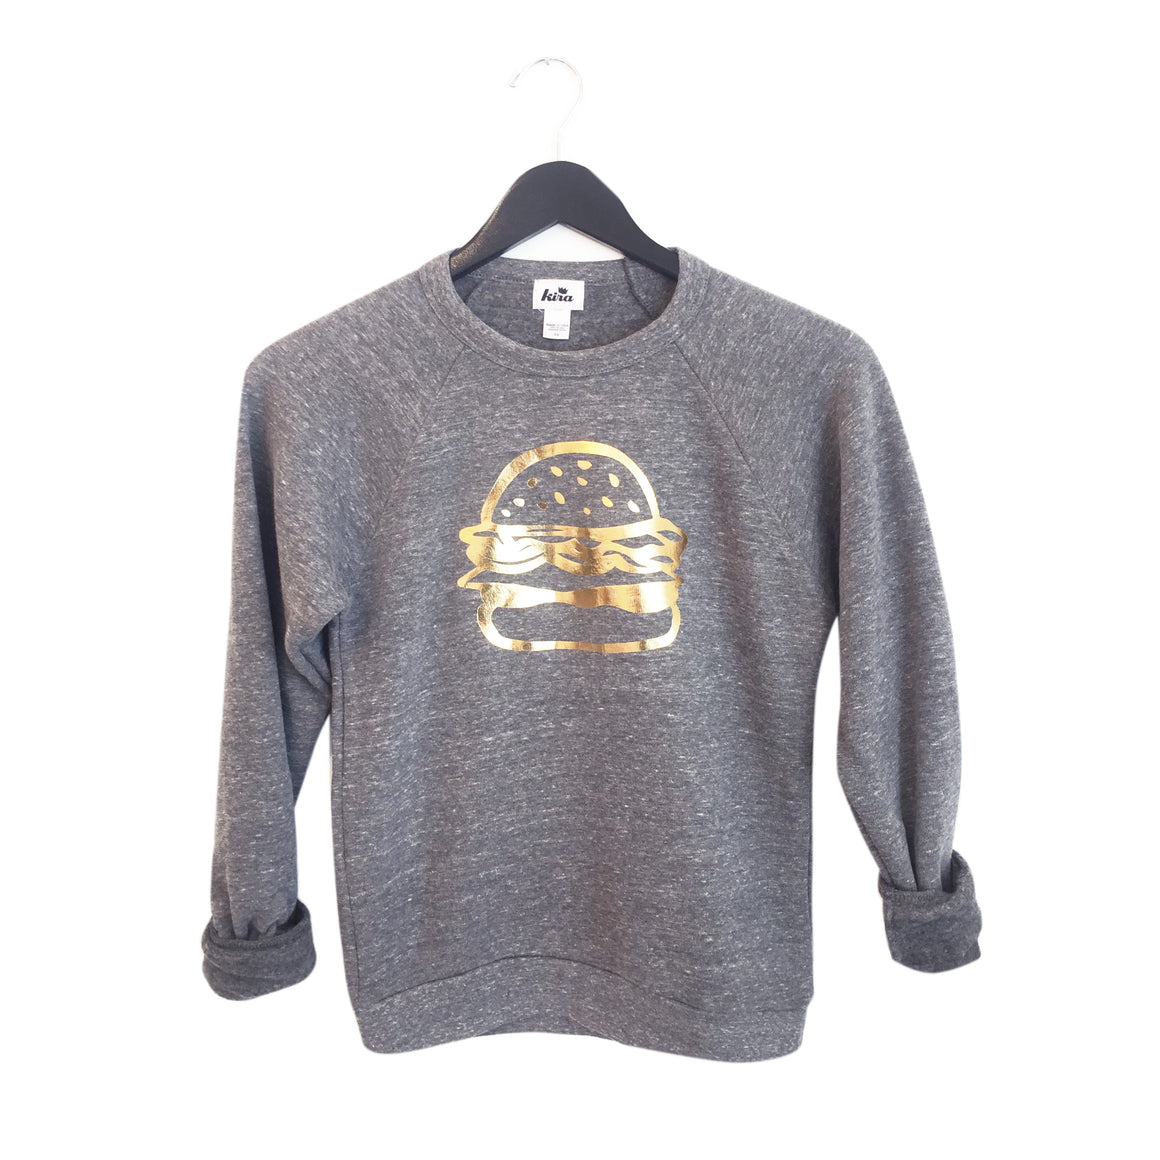 Adult Unisex Burger Graphic Raglan Sweatshirt, Warm Grey